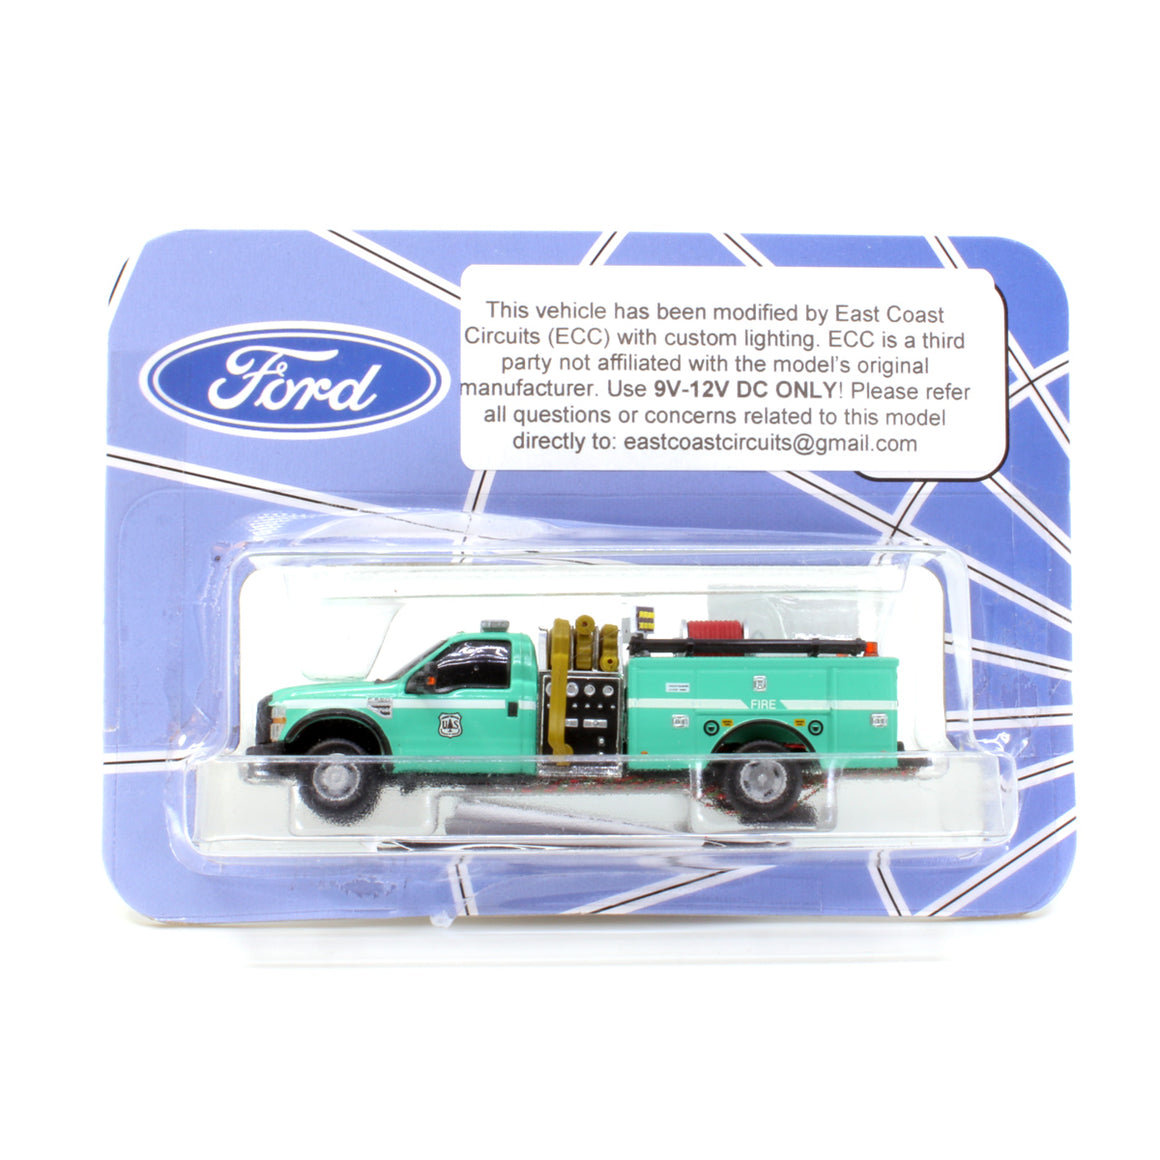 HO Scale: Lighted Ford F-550 - Mini Pumper Fire Truck - U.S. Forest Service